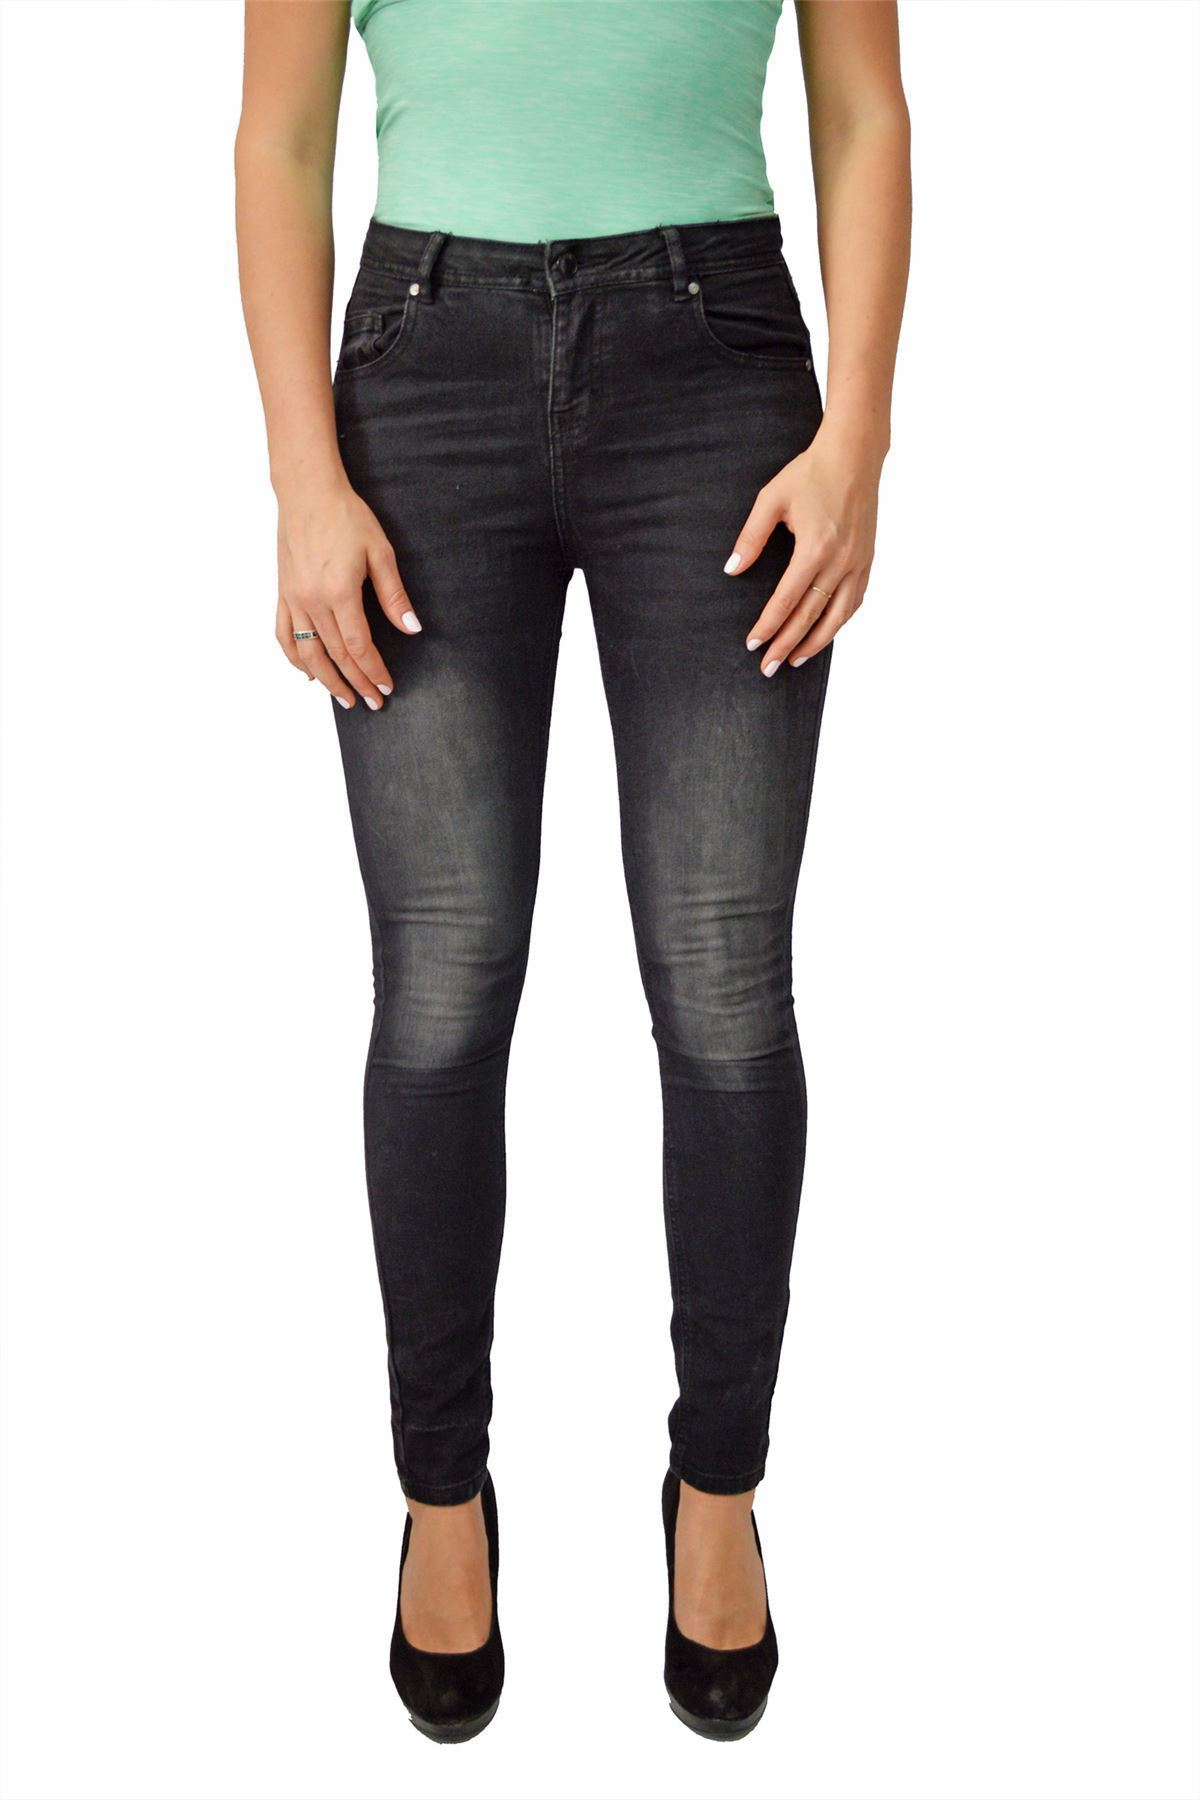 EX New Look Slim Skinny High Rise Jeans in Nero O Blu Scuro Taglia 6 8 10 12